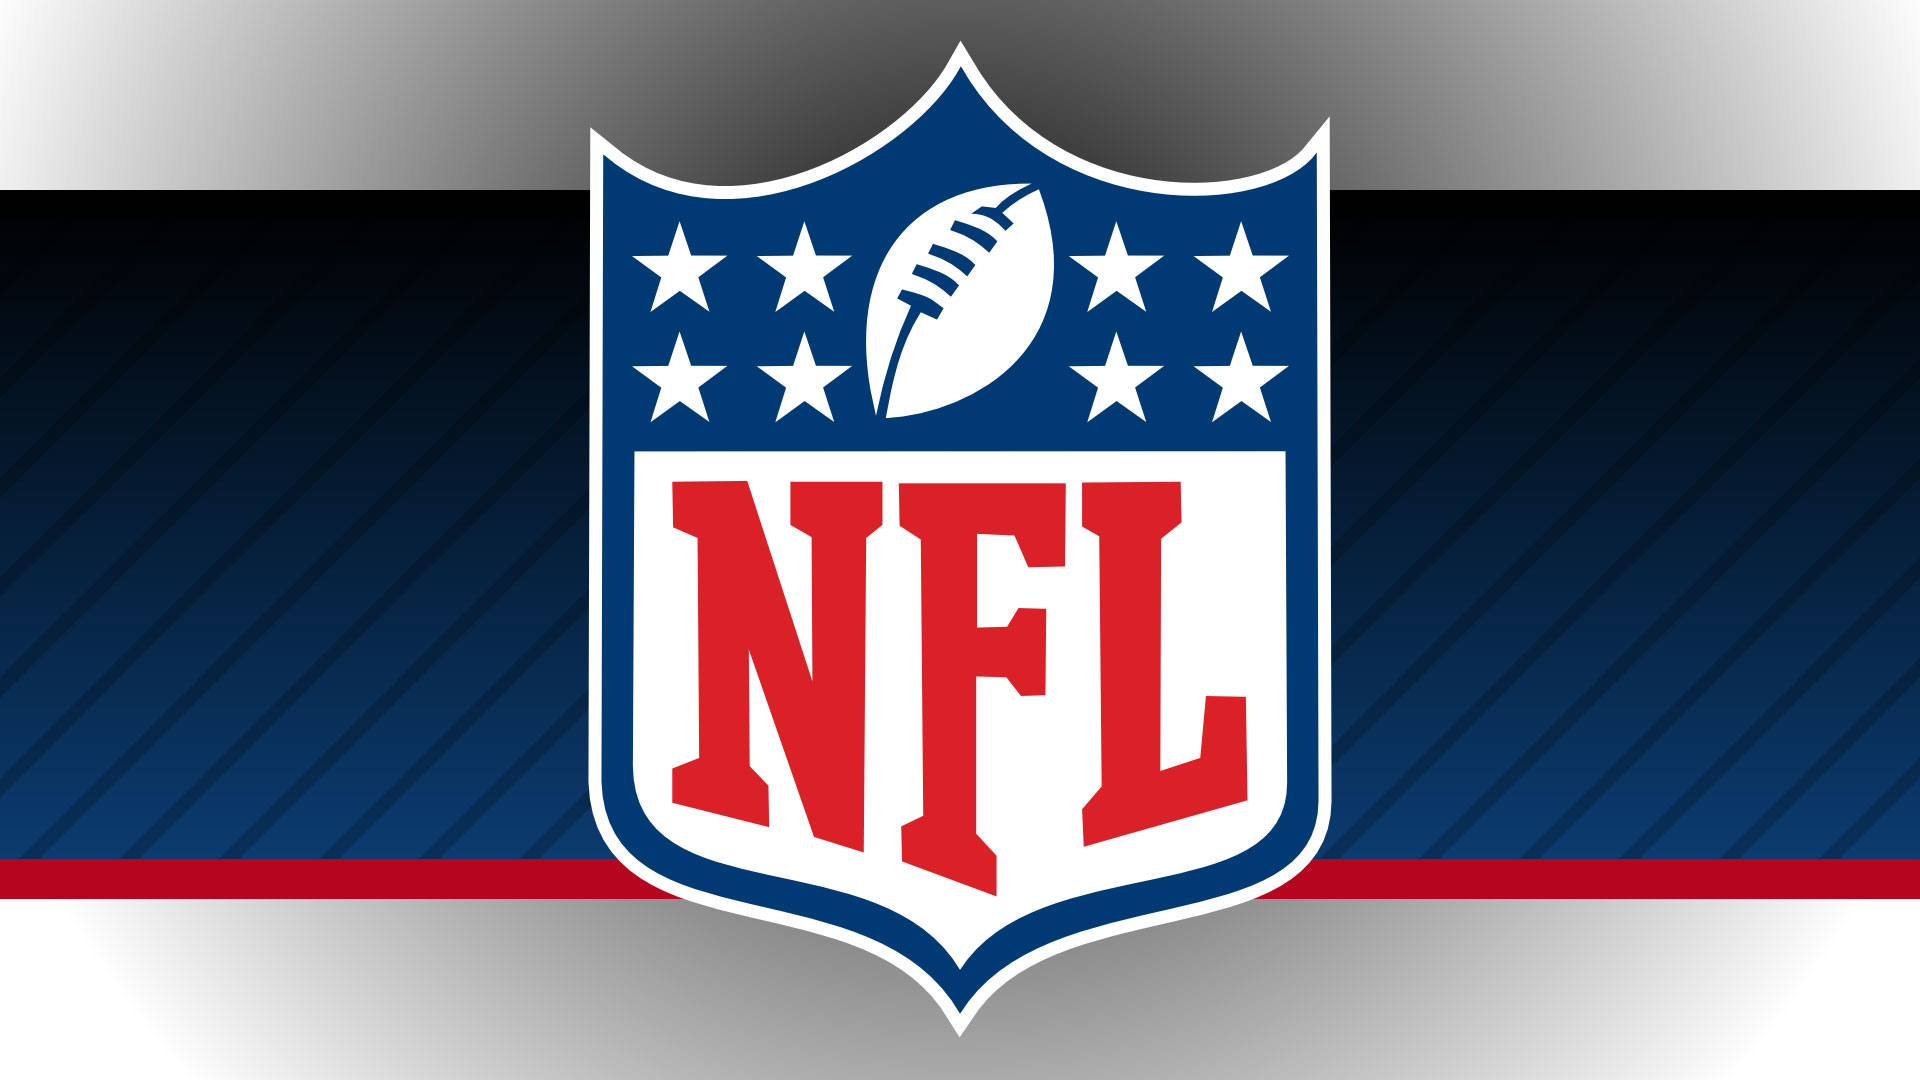 Nfl Professional American Football